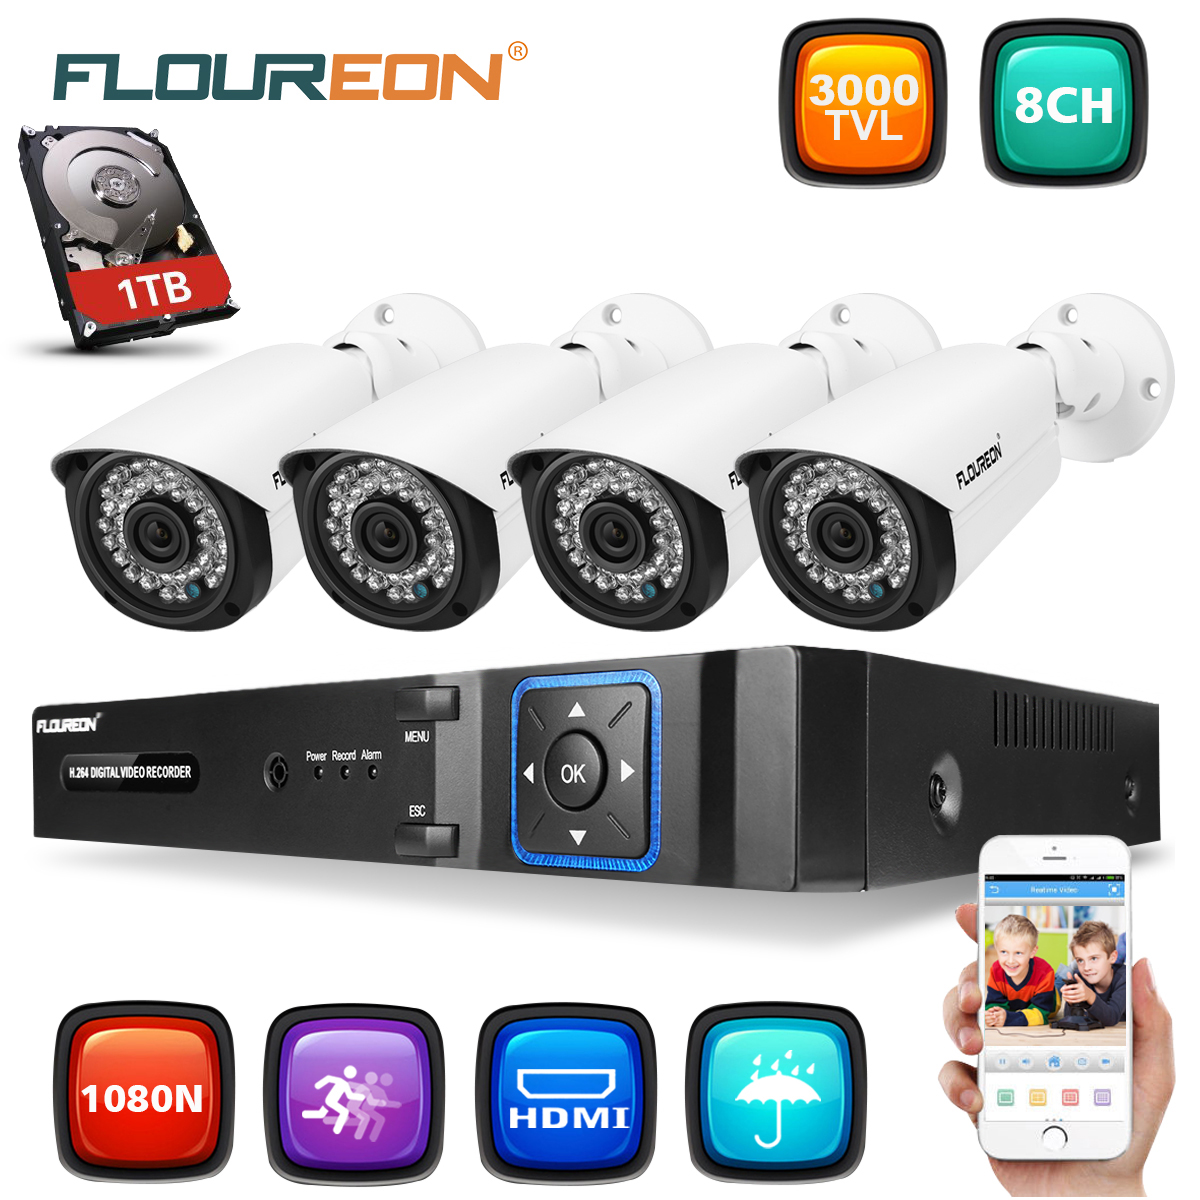 FLOUREON 8 Channel Video Surveillance System, 2MP 8CH NVR with 1TB HDD, 5-in-1 Security Camera 2MP for 24/7 Remote Home Monitoring System